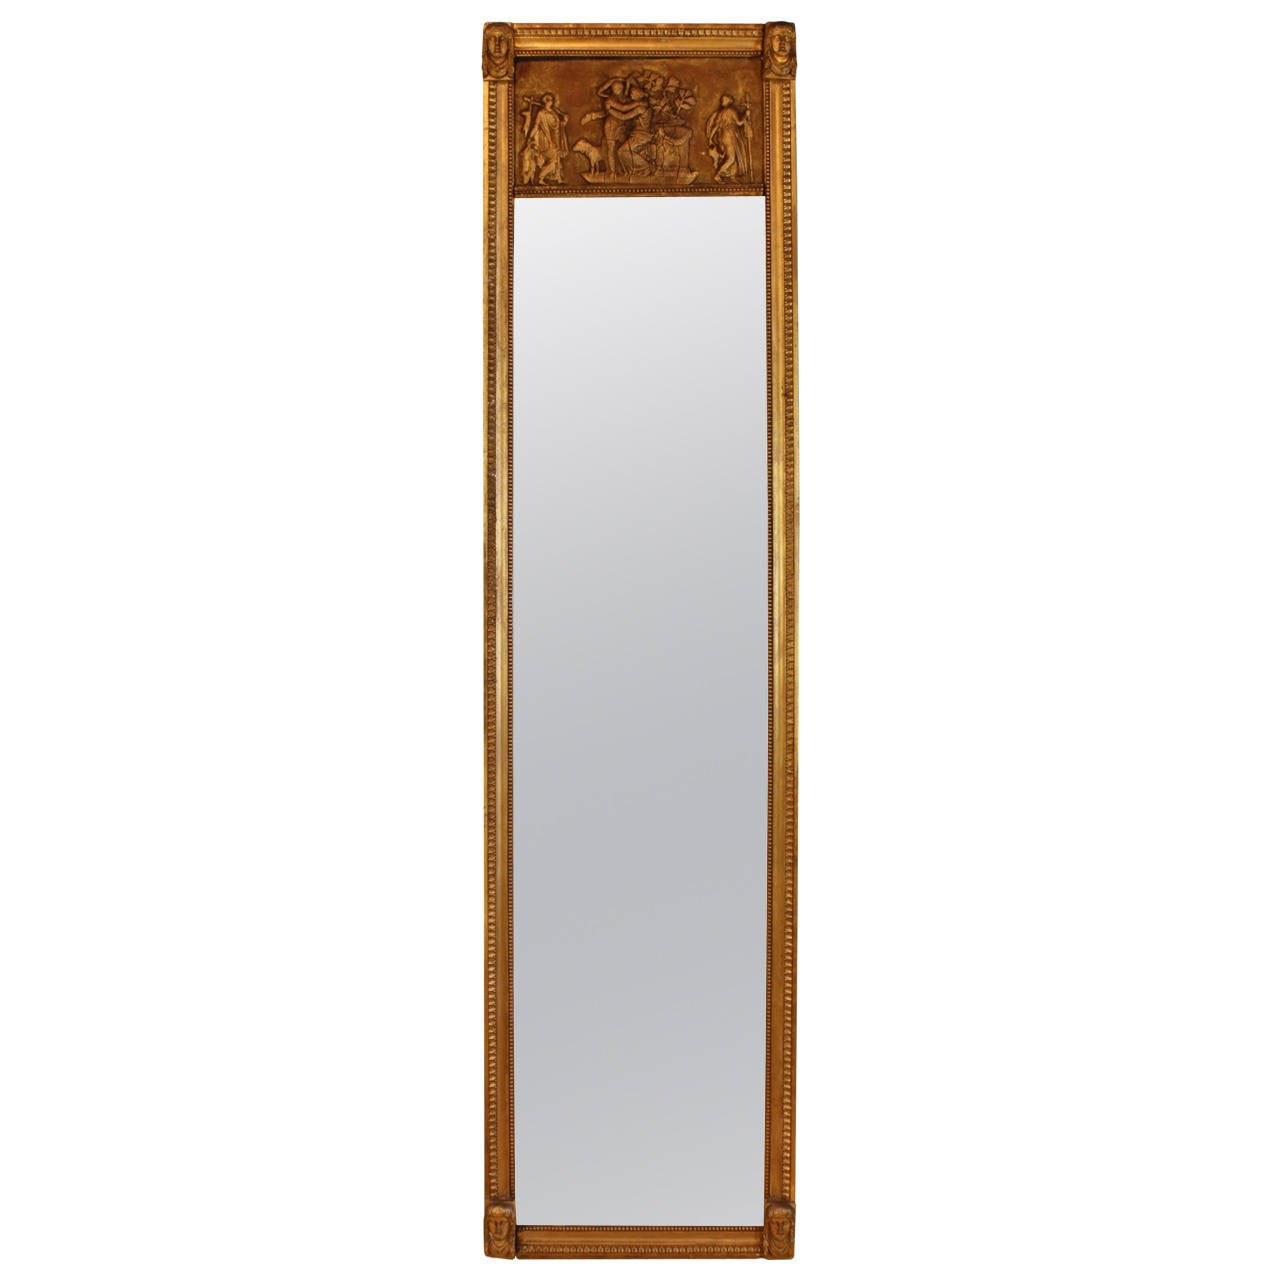 French empire trumeau mirror at 1stdibs for French mirror